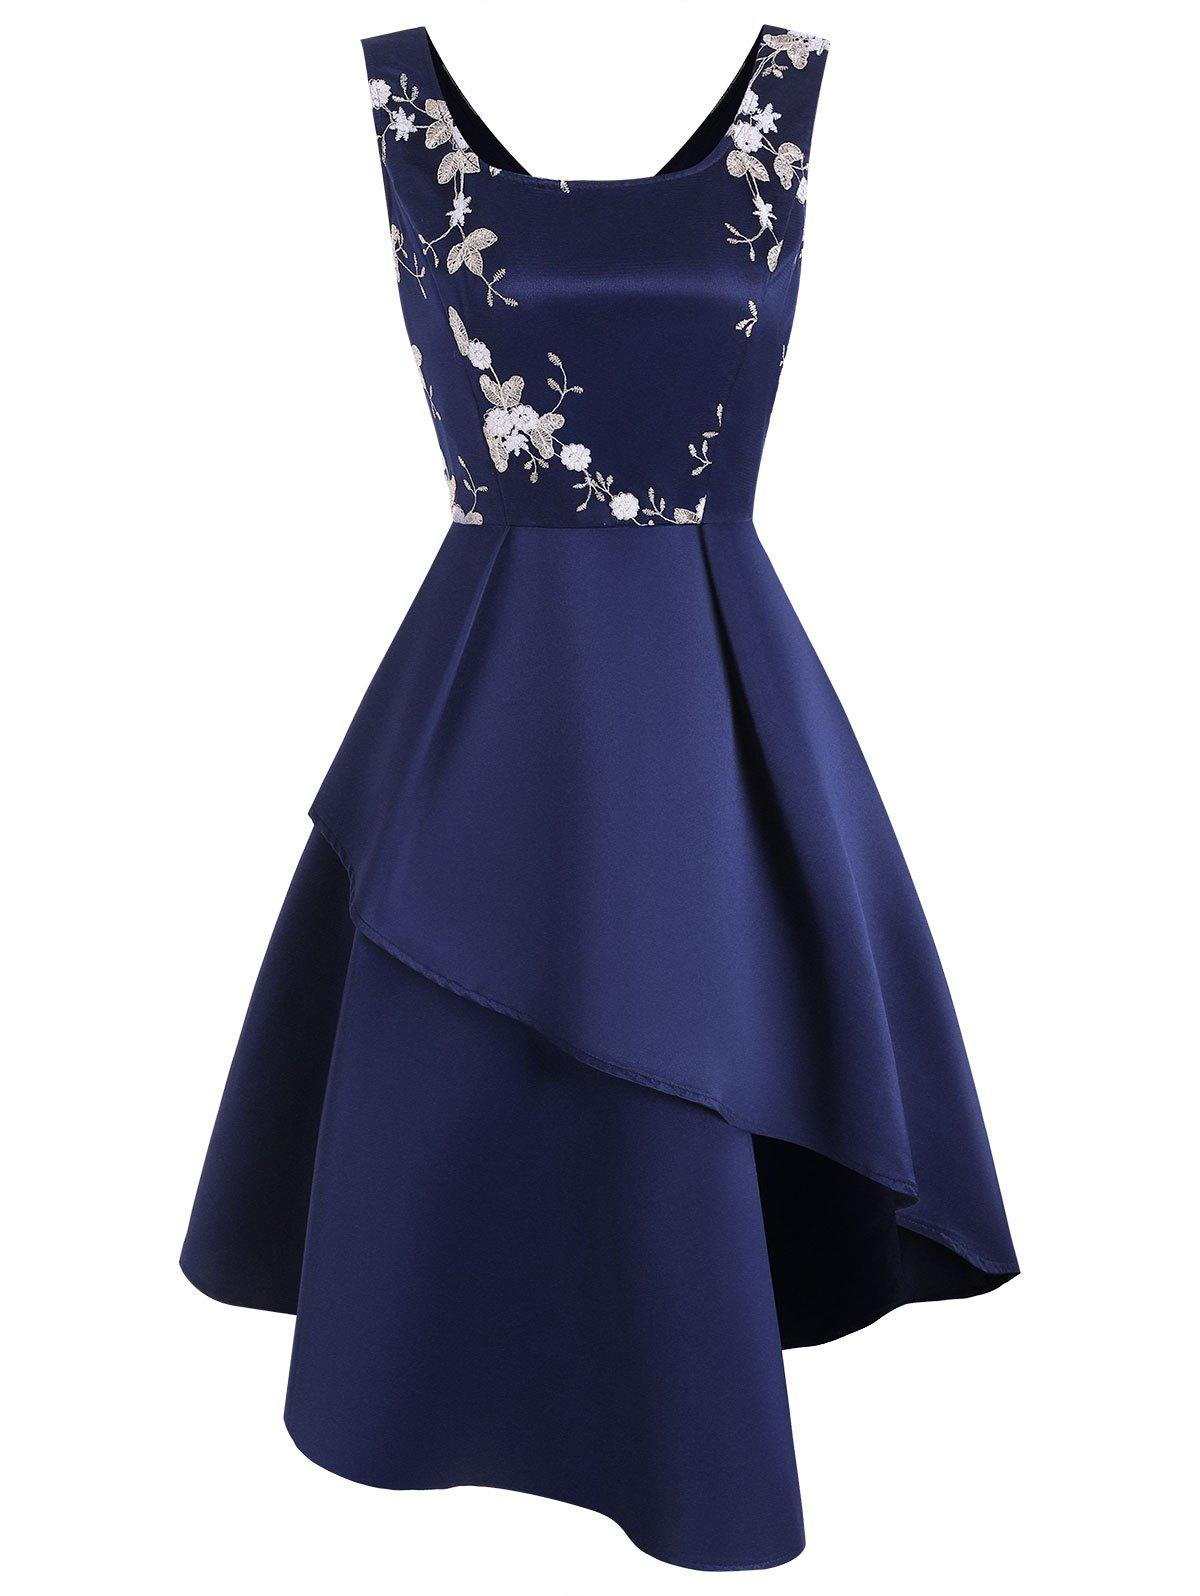 Flower Embroidered Sleeveless Asymmetrical Dress - DEEP BLUE L